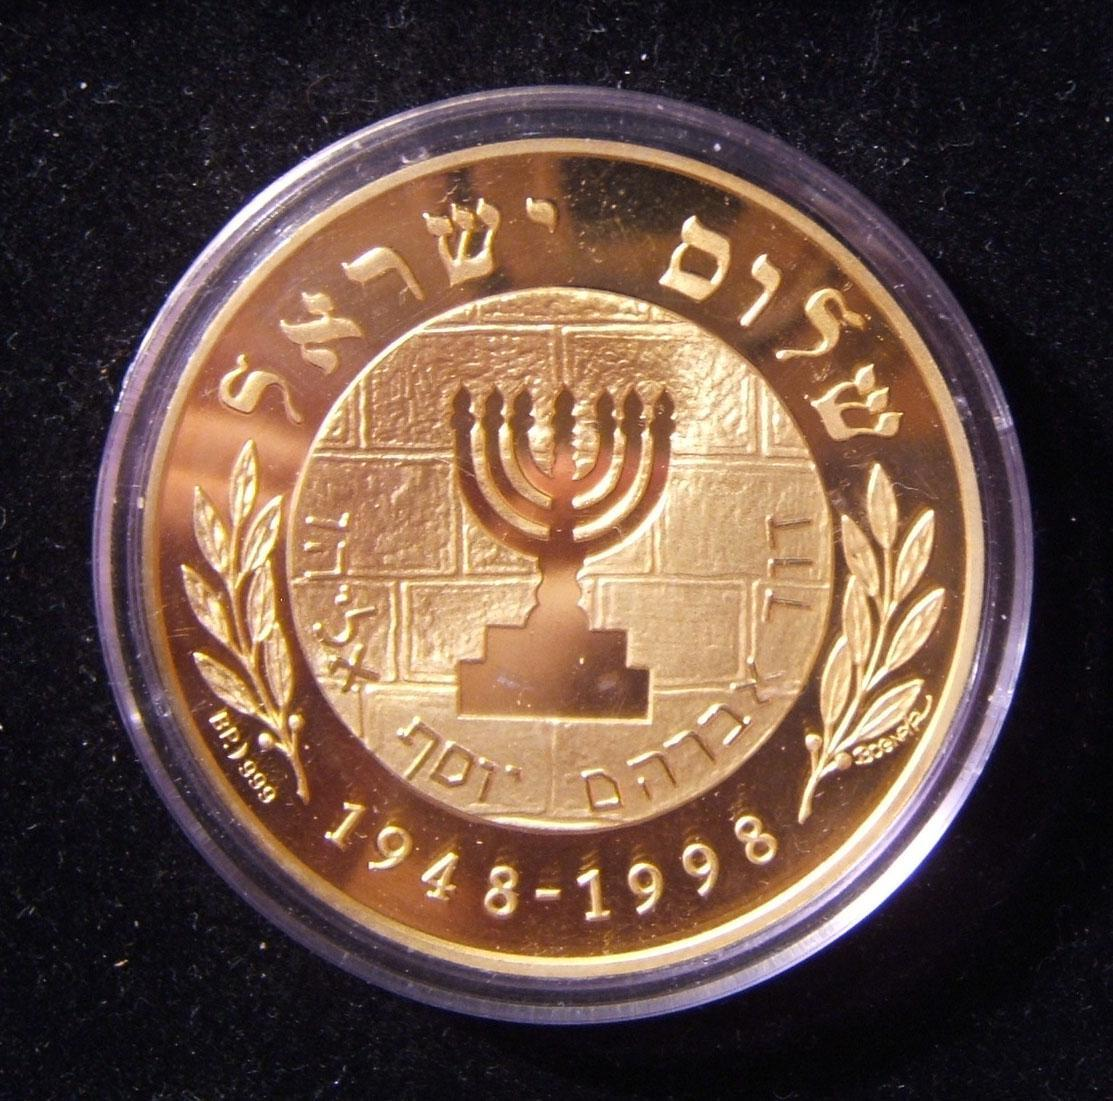 Hungary: Israel's 50th Anniversary commem. proof gold-plated silver medal, 1998, by György Bognár; minted by Hungarian Mint; size: 42.25mm; weight: 31.3g; thickness: 3.5mm. Obv.: 7